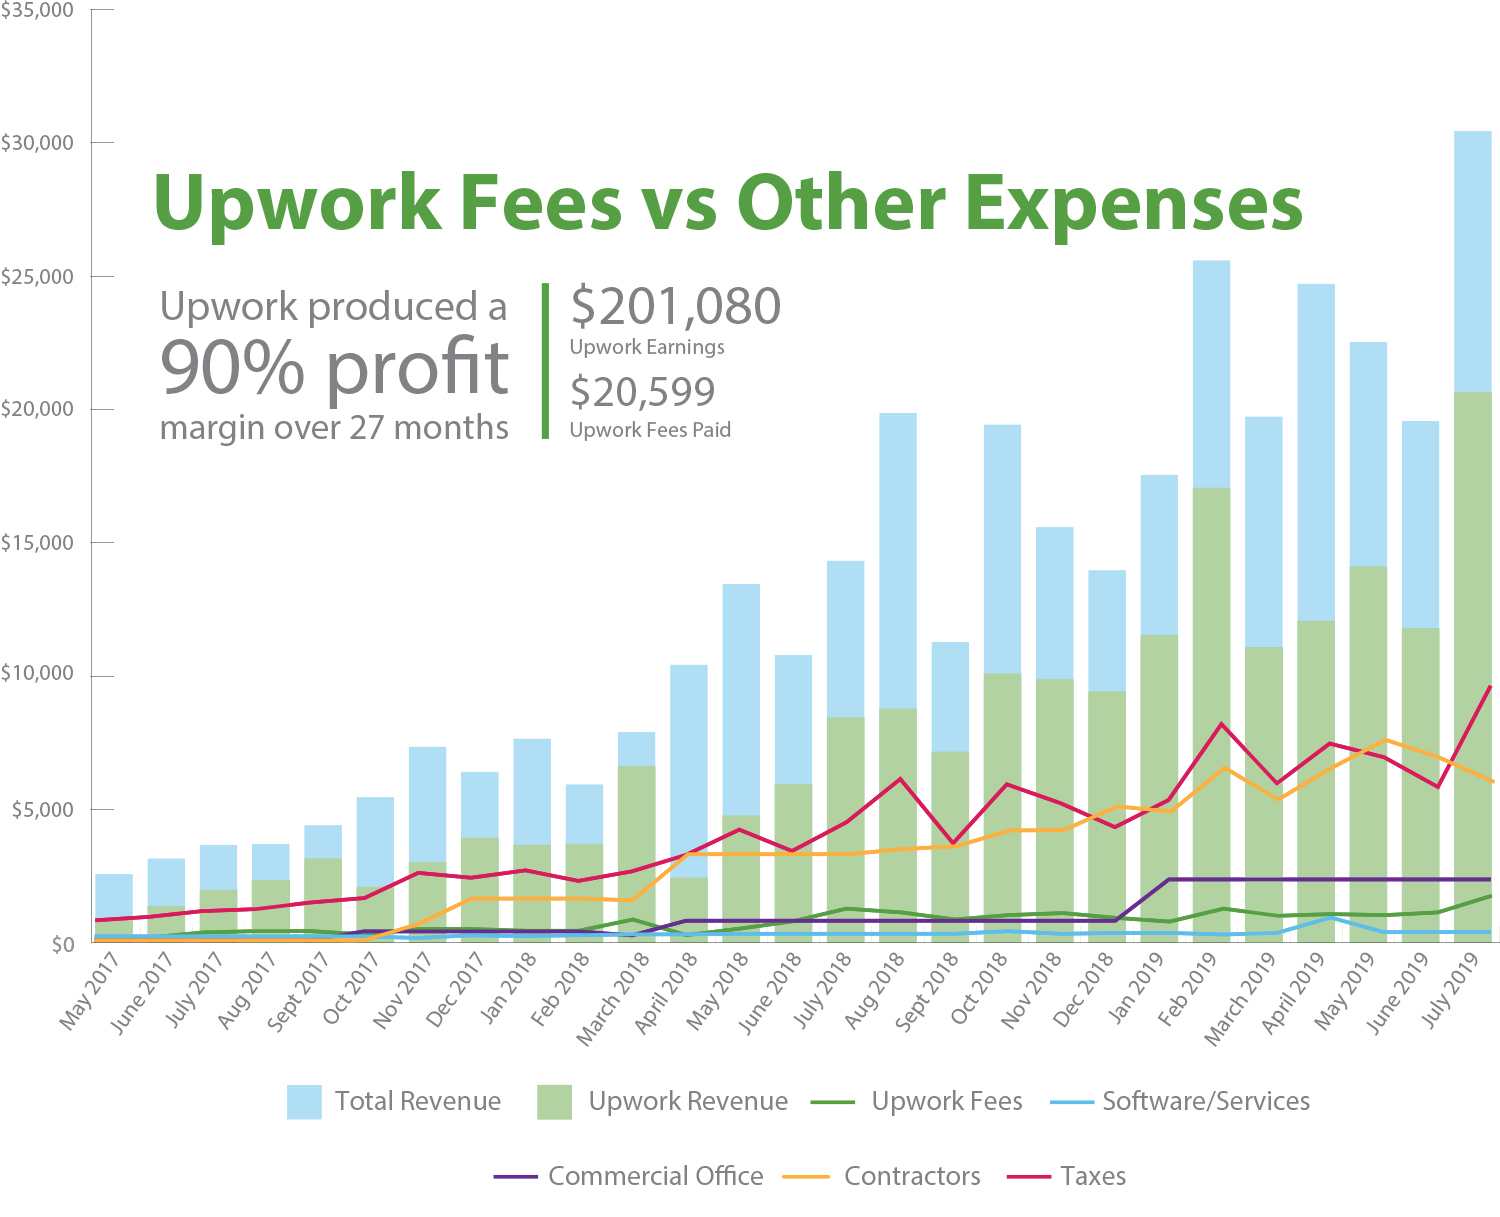 Upwork fees vs other business expenses